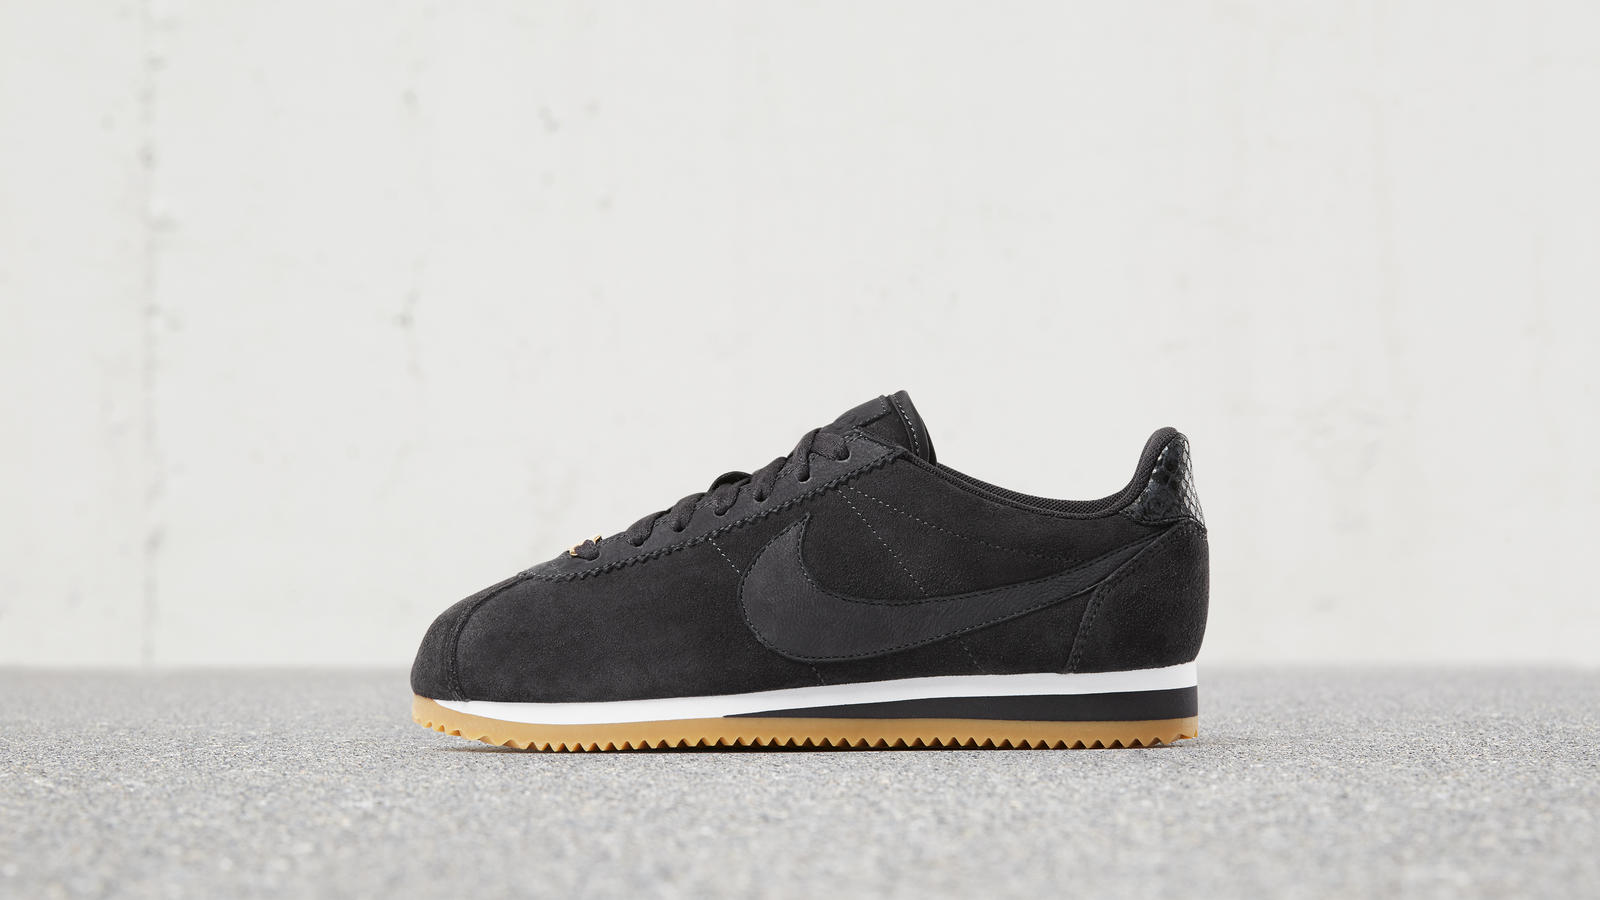 brand new bfb6f 58345 Nike Cortez by A.L.C. - Nike News